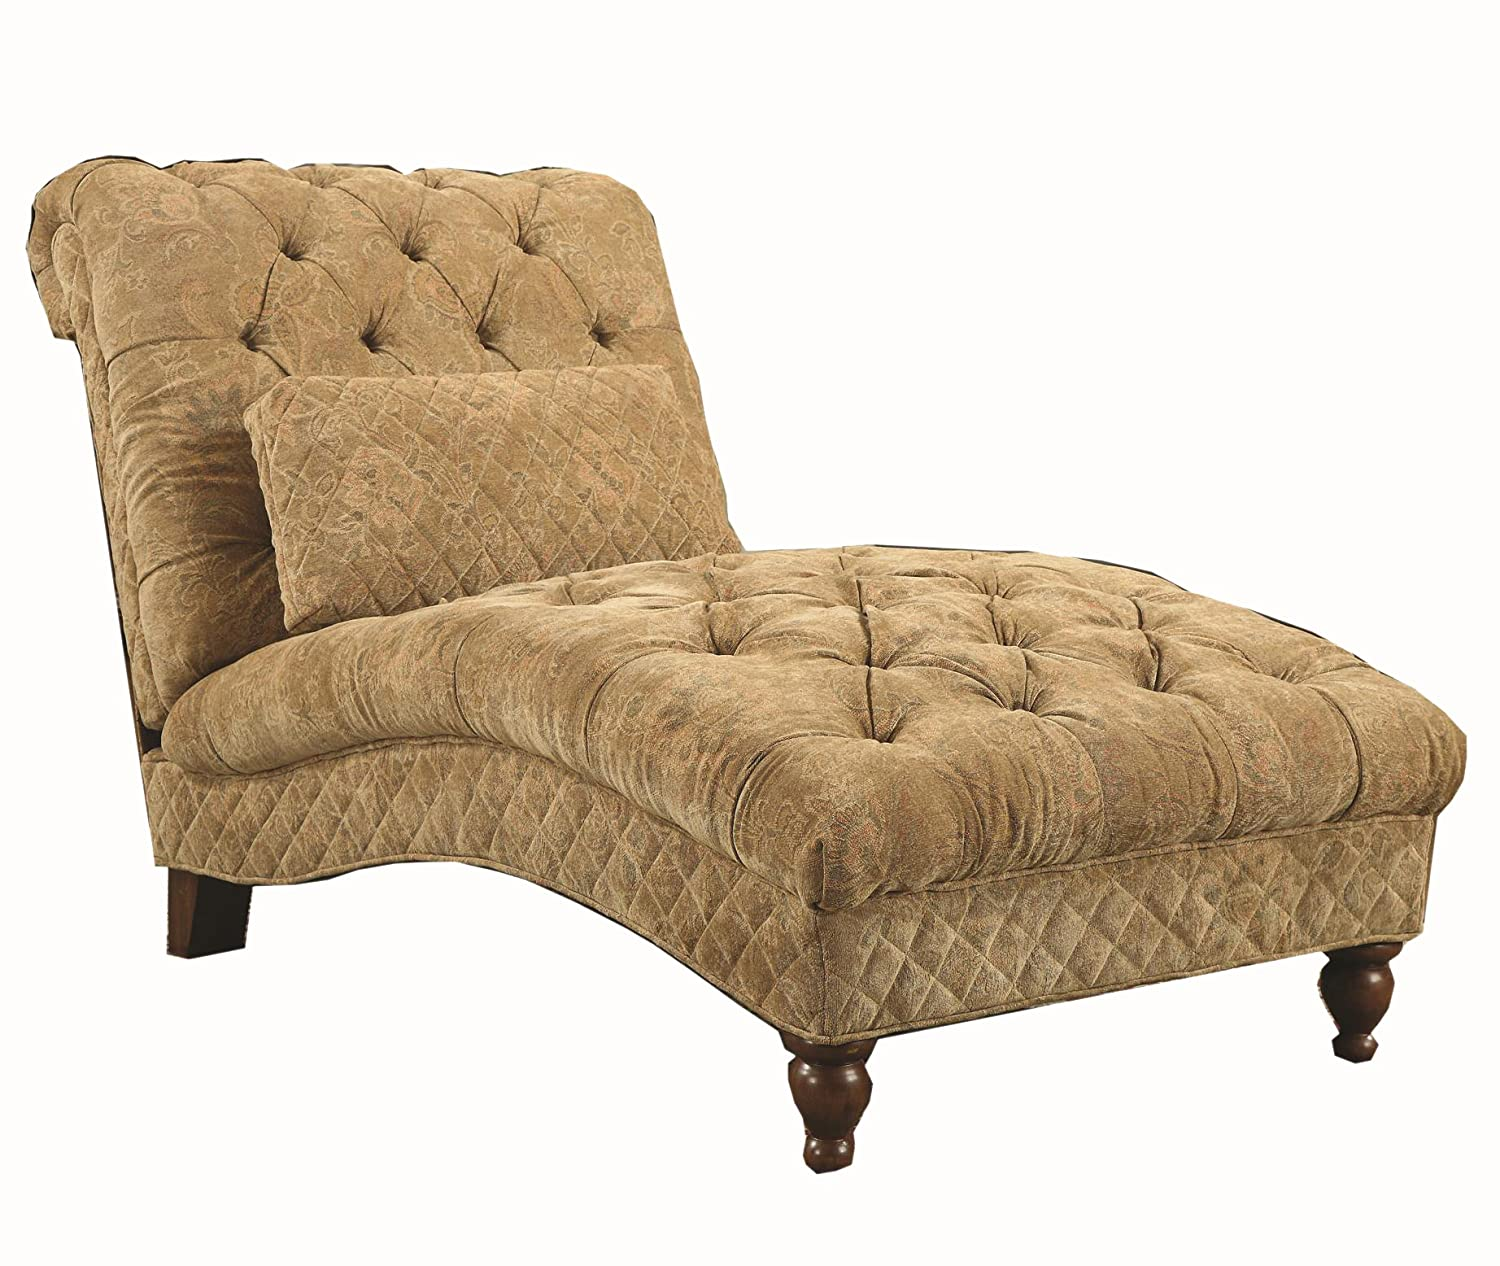 Charming Coaster Home Furnishings Modern Transitional Scroll Tufted Upholstered  Chaise Lounge Chair With Lumbar Pillow   Golden